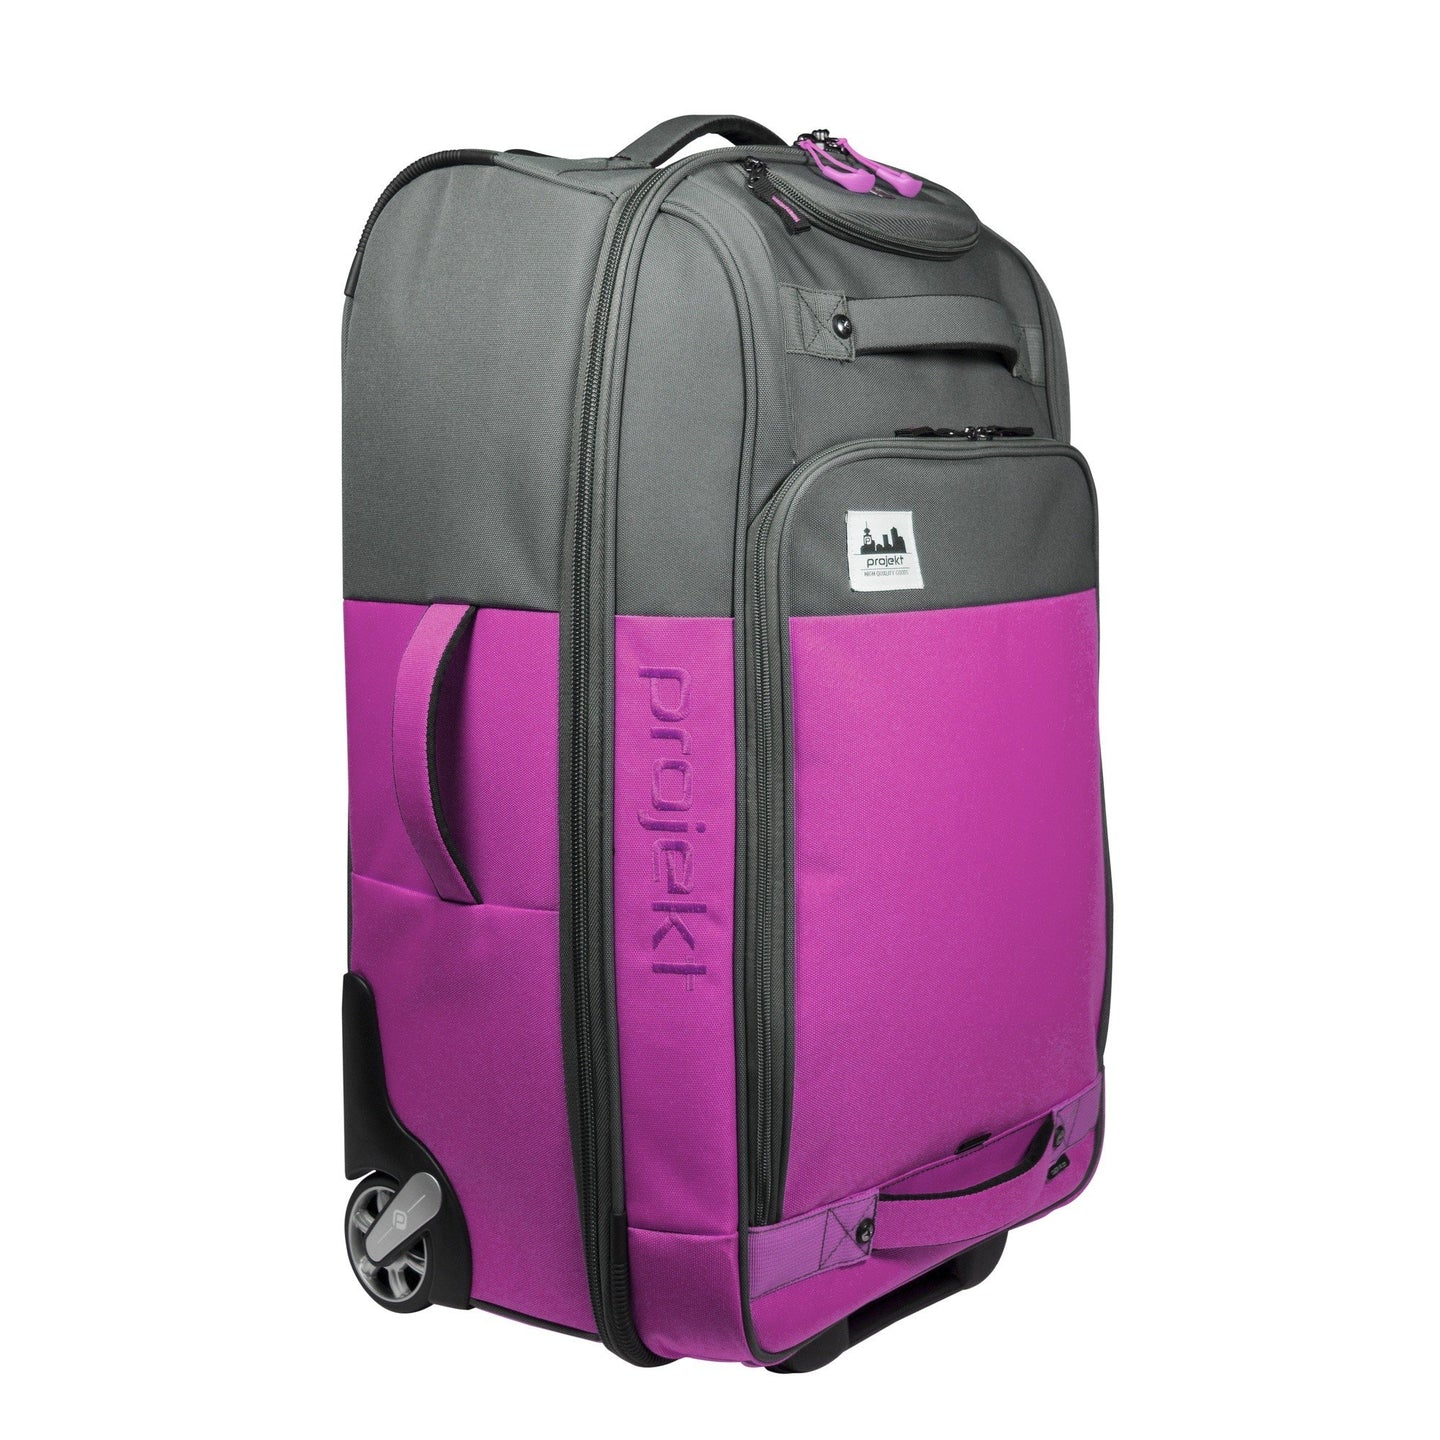 Check-in 101 - Magenta/Charcoal